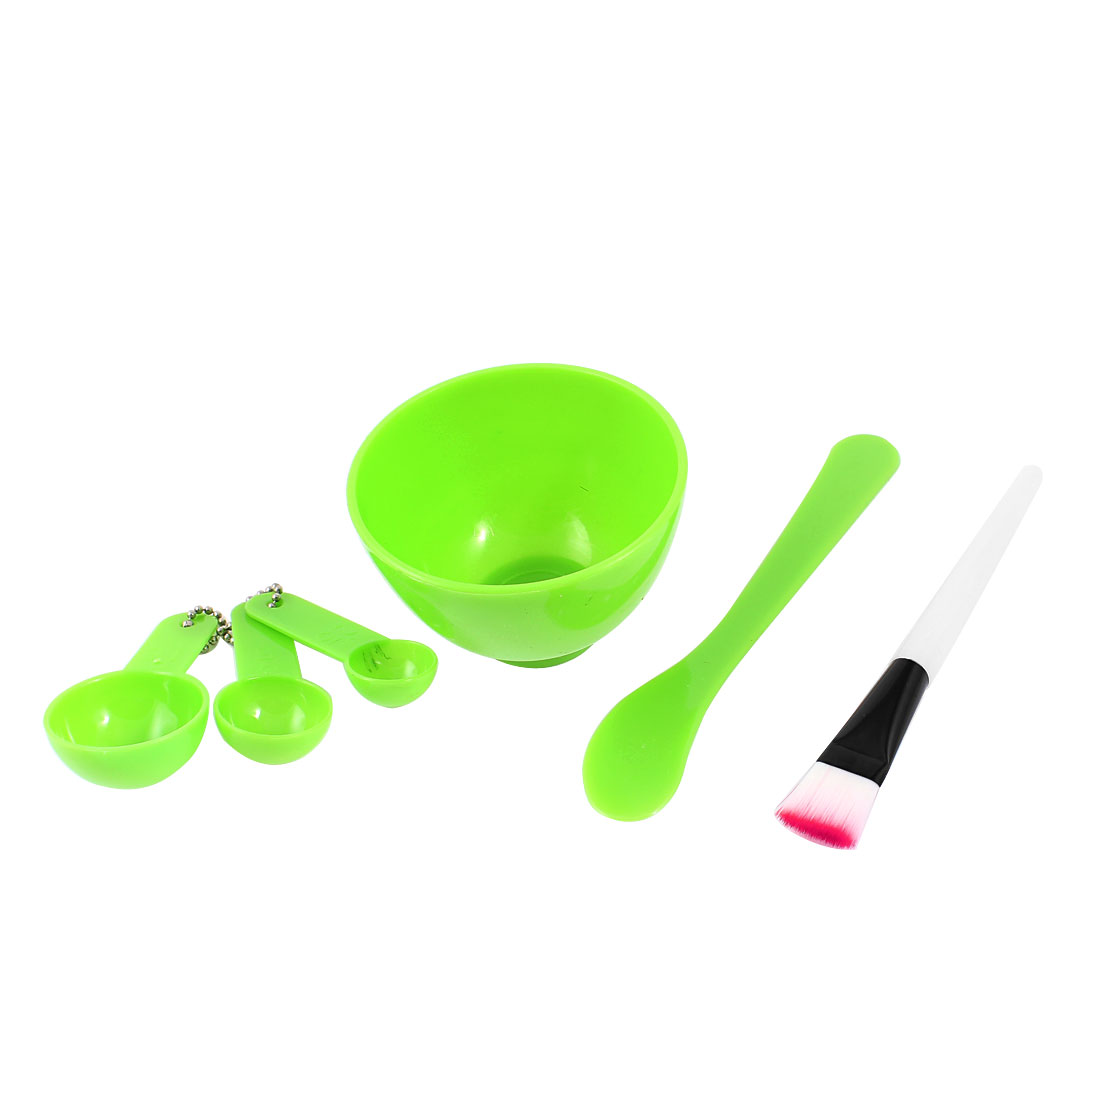 Beauty Cosmetic DIY Facial Mask Tool Set Mixing Bowl Brush Stick Measuring Spoon Green 4 in 1